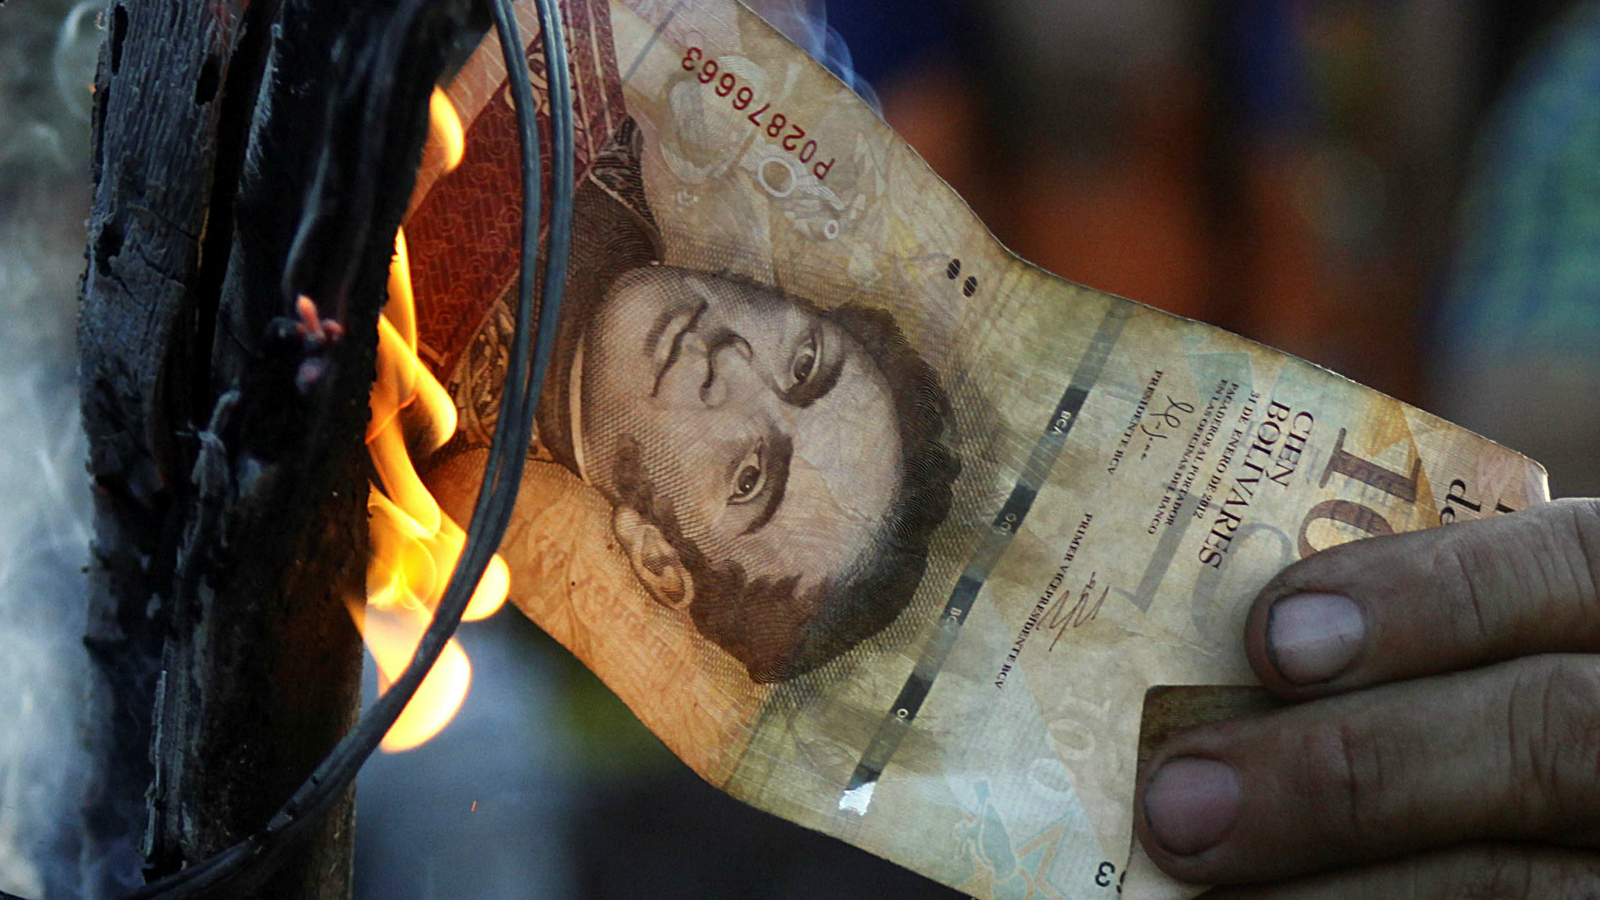 A man burns a 100-bolivar bill during a protest in El Pinal, Venezuela December 16, 2016.